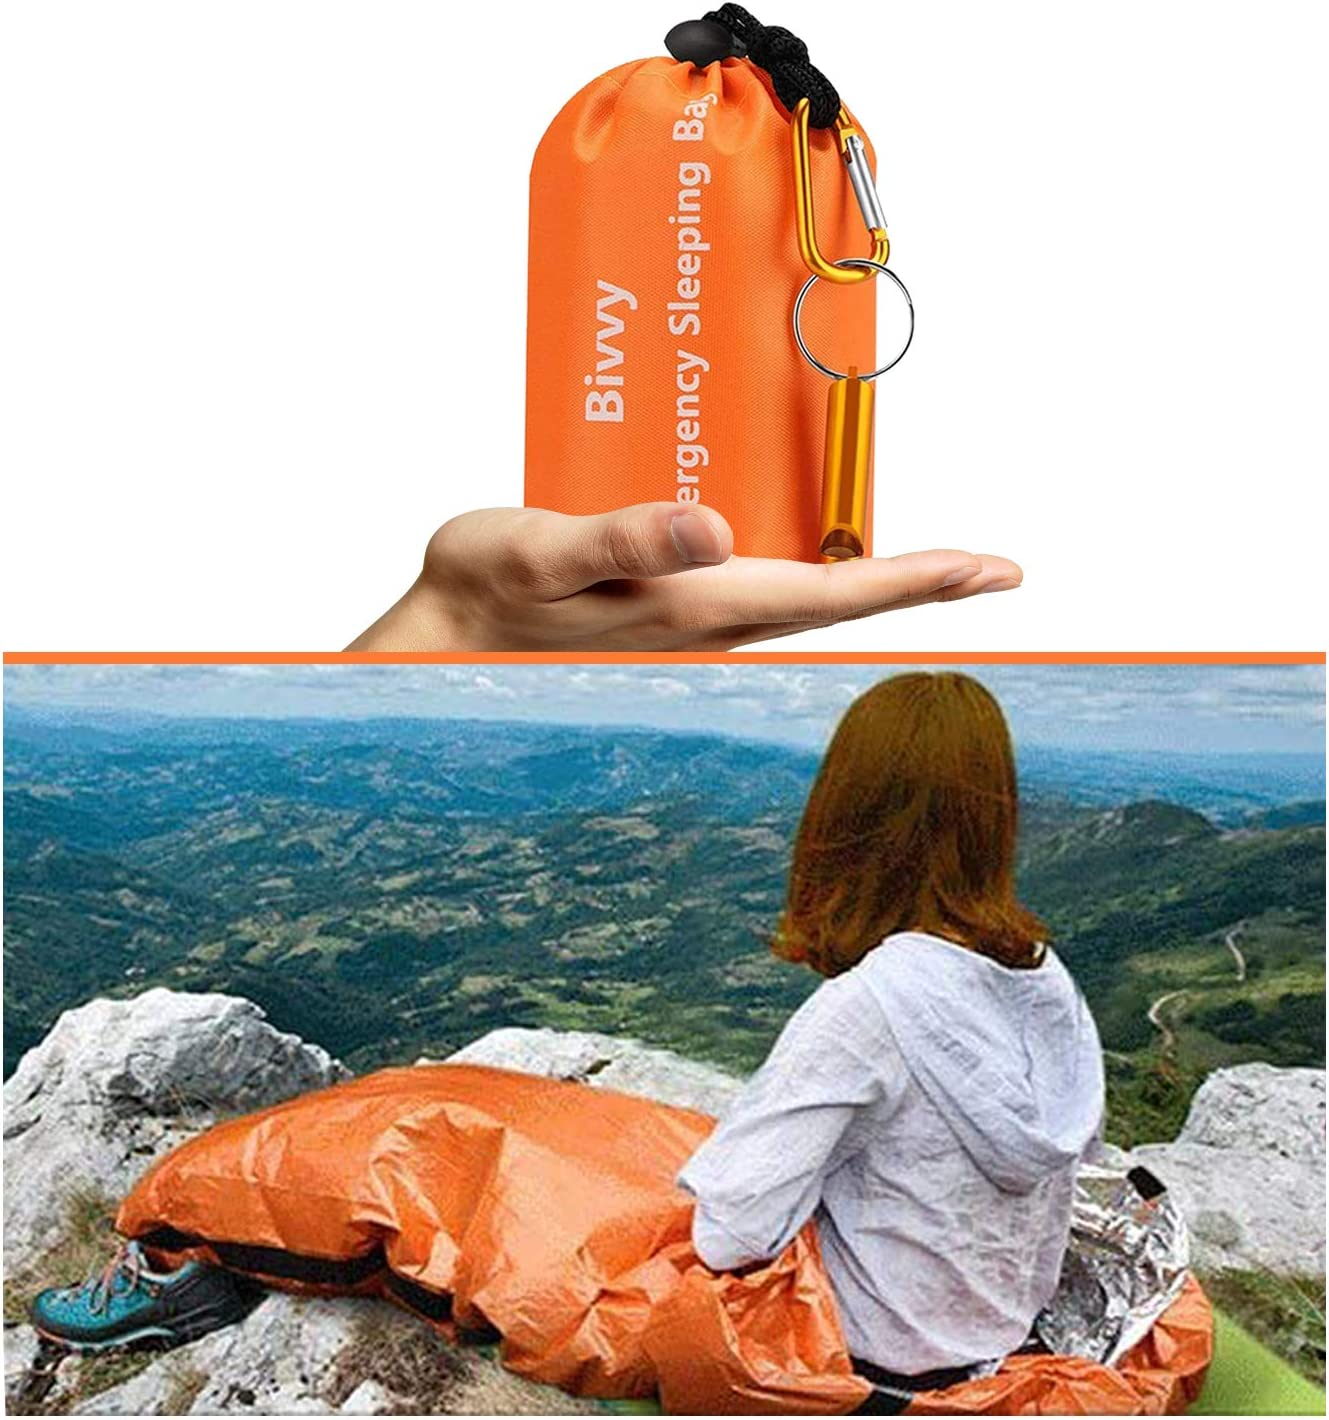 AMOYON Emergency Bivy Sack, Survival Sleeping Bag Emergency Blanket Lightweight and Compact Survival Gear for Outdoor, Hiking, Camping with Portable Drawstring Bag + Whistle + Carabiner(orange-one pack) : Sports & Outdoors